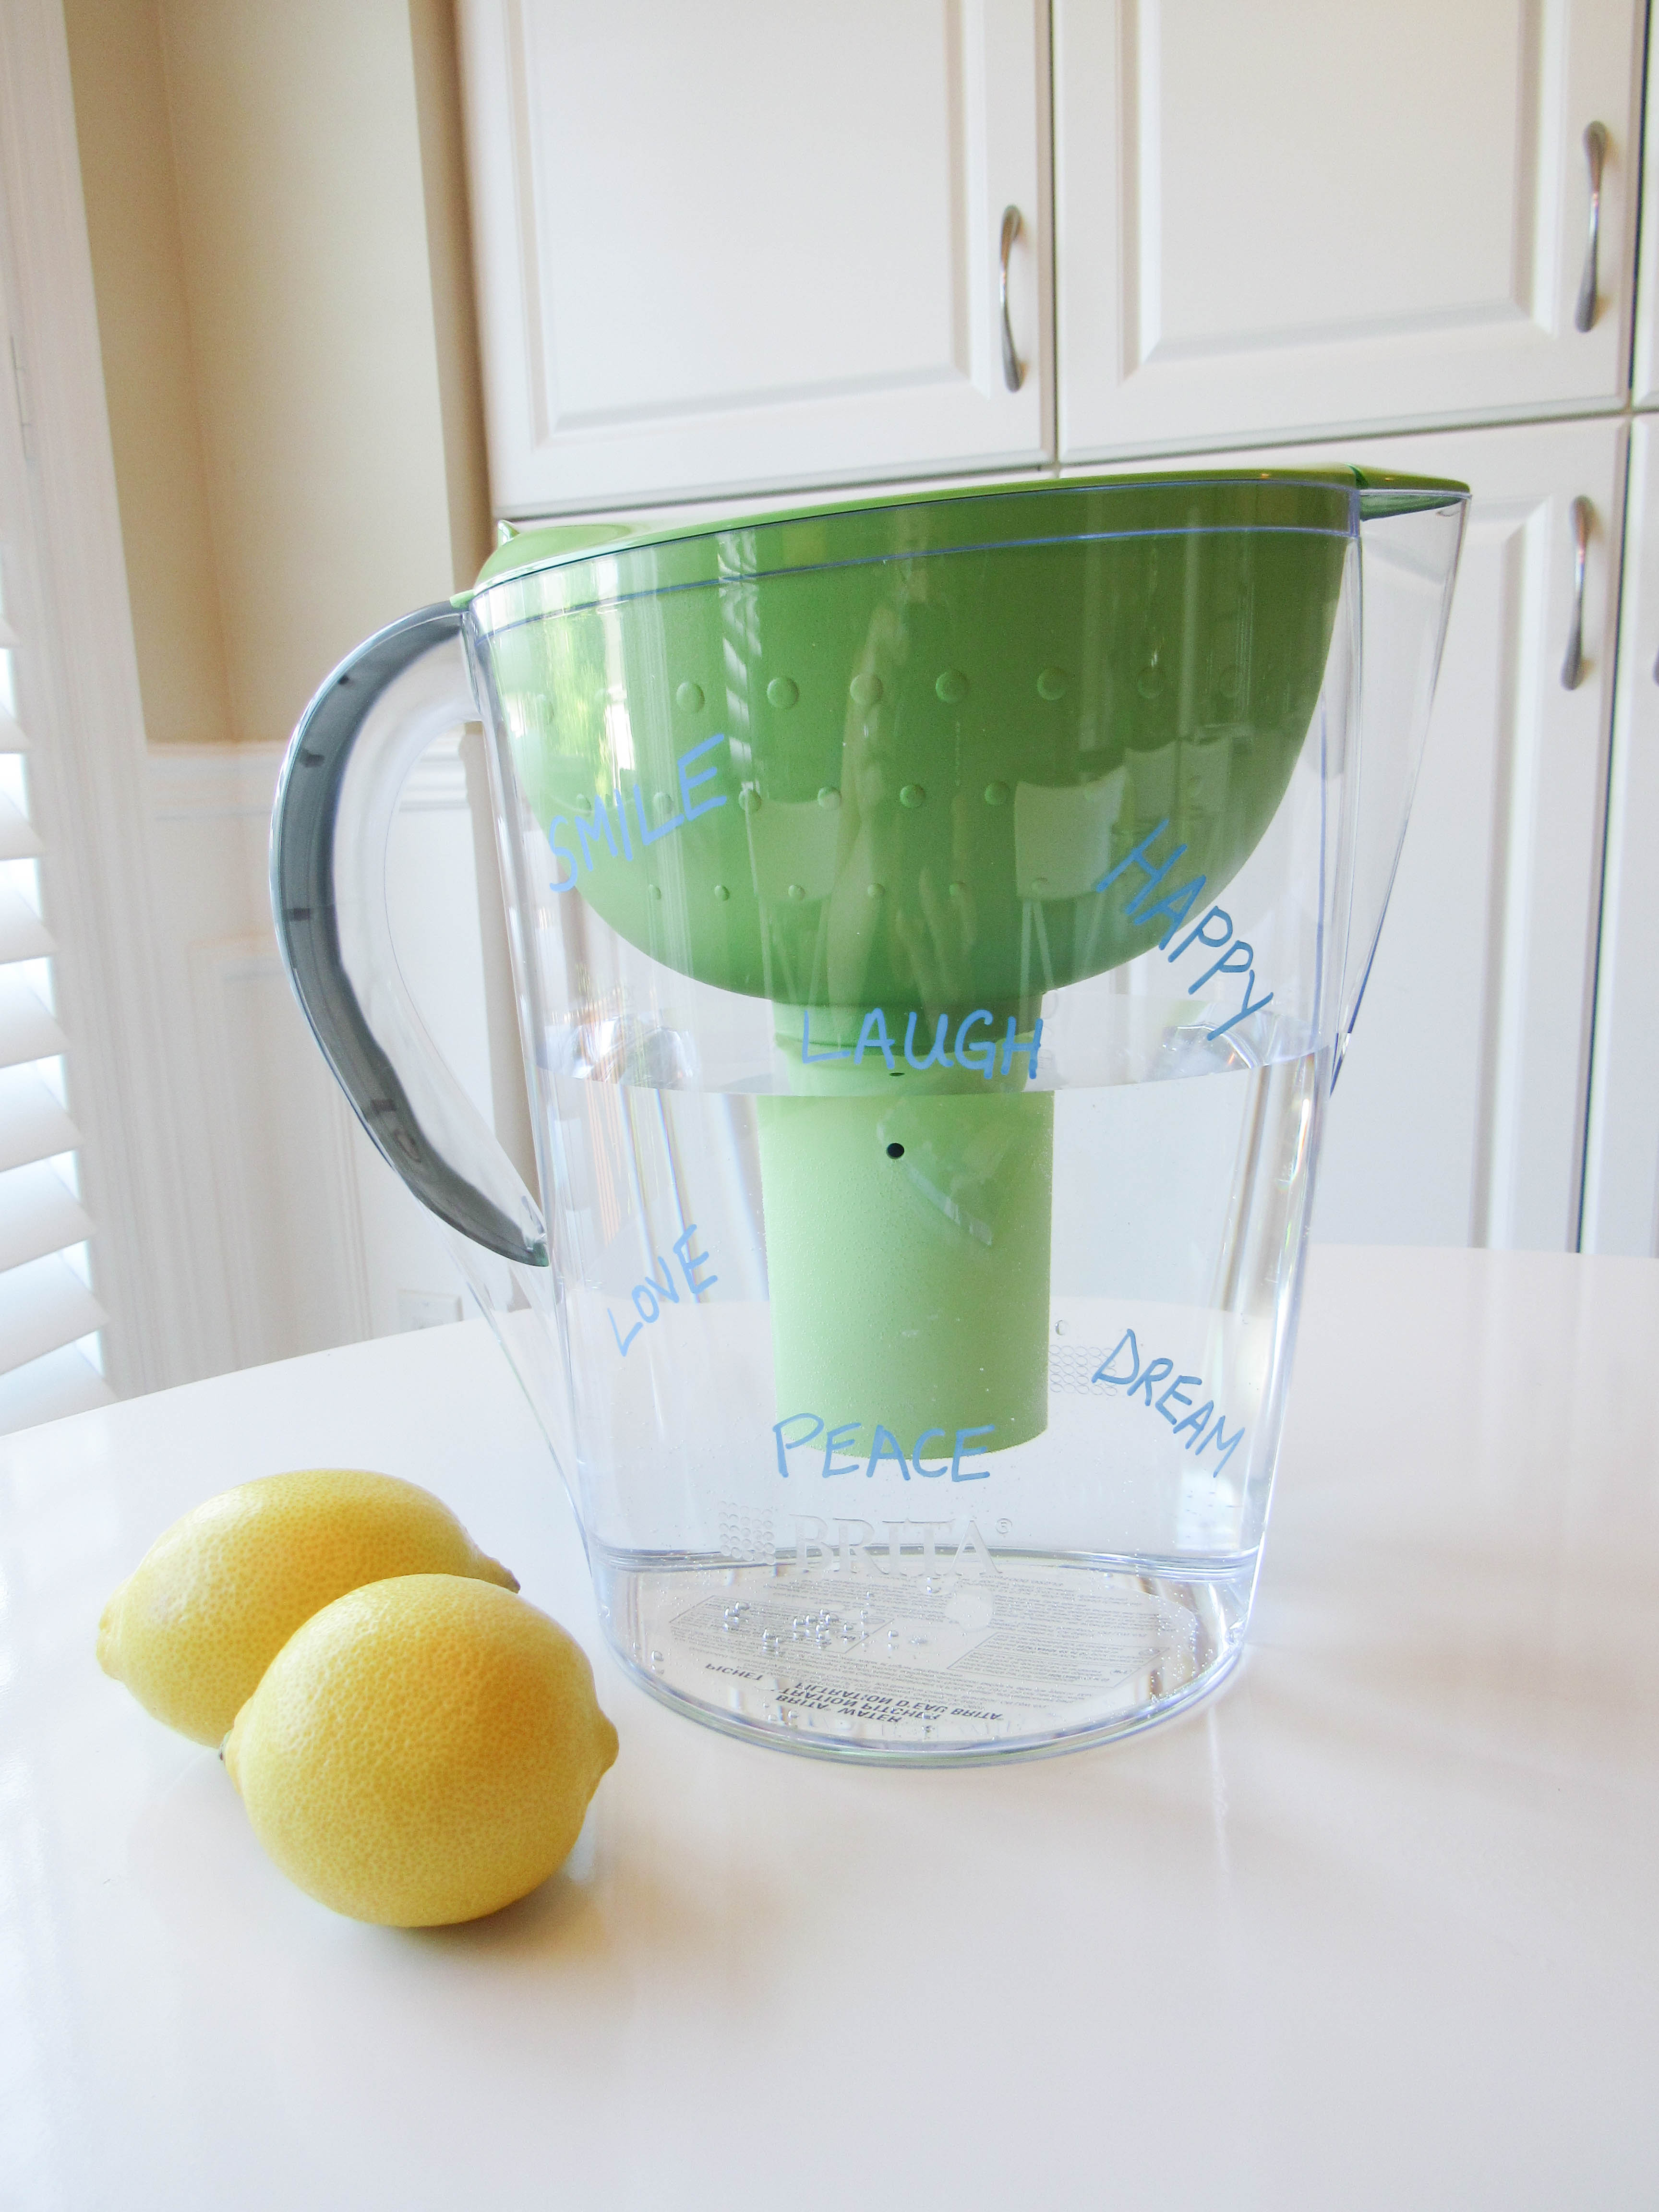 Brita Water Filter- Livin' Life with Style